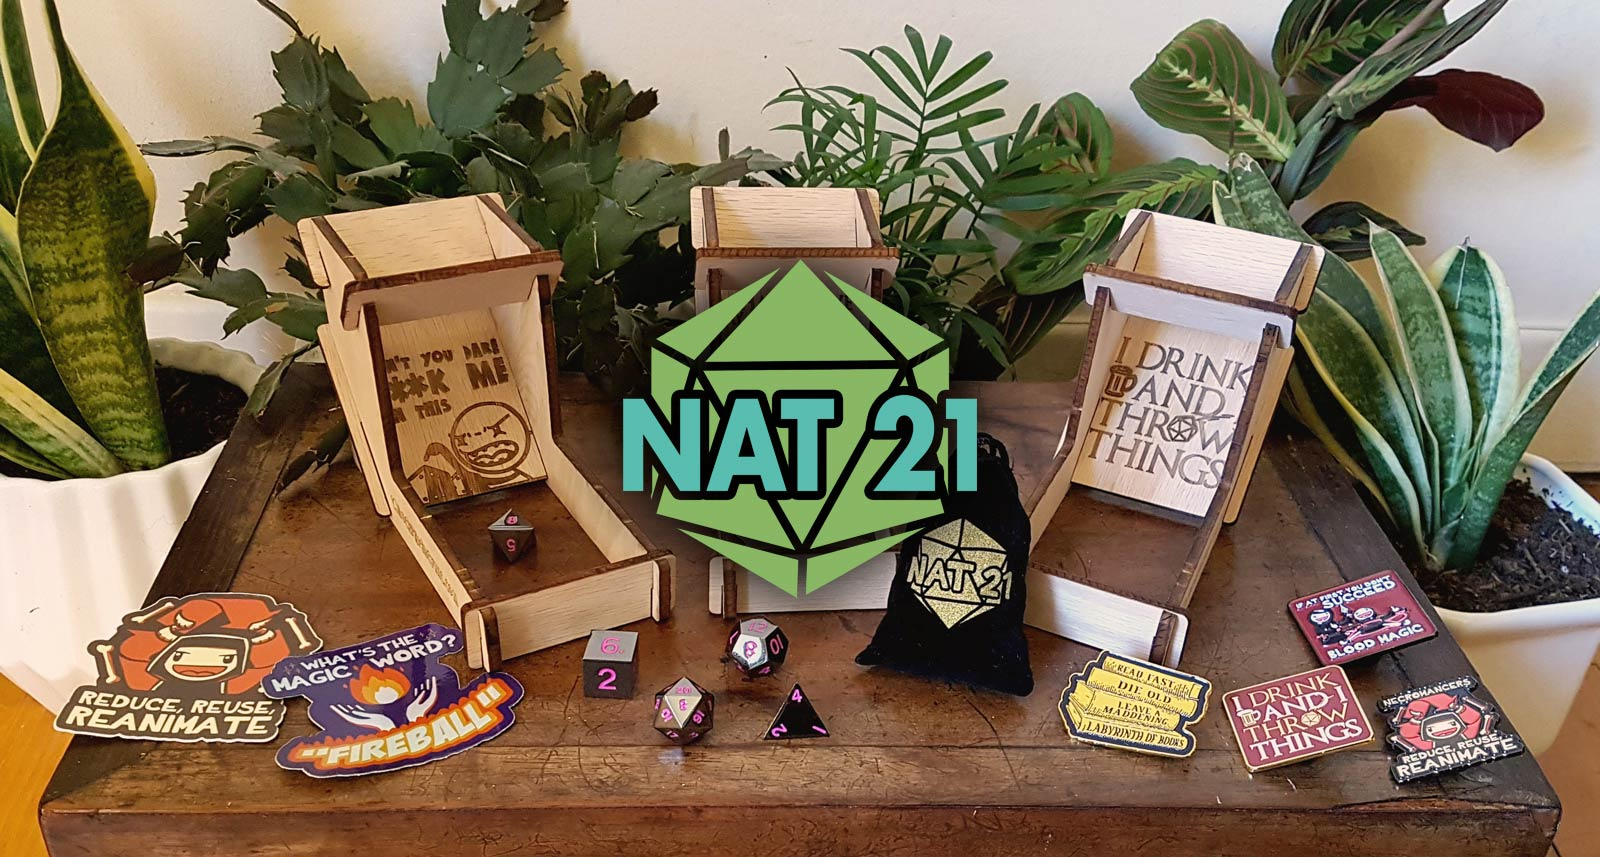 Nat 21 Workshop dice towers, D&D shirts, pins, stickers and more